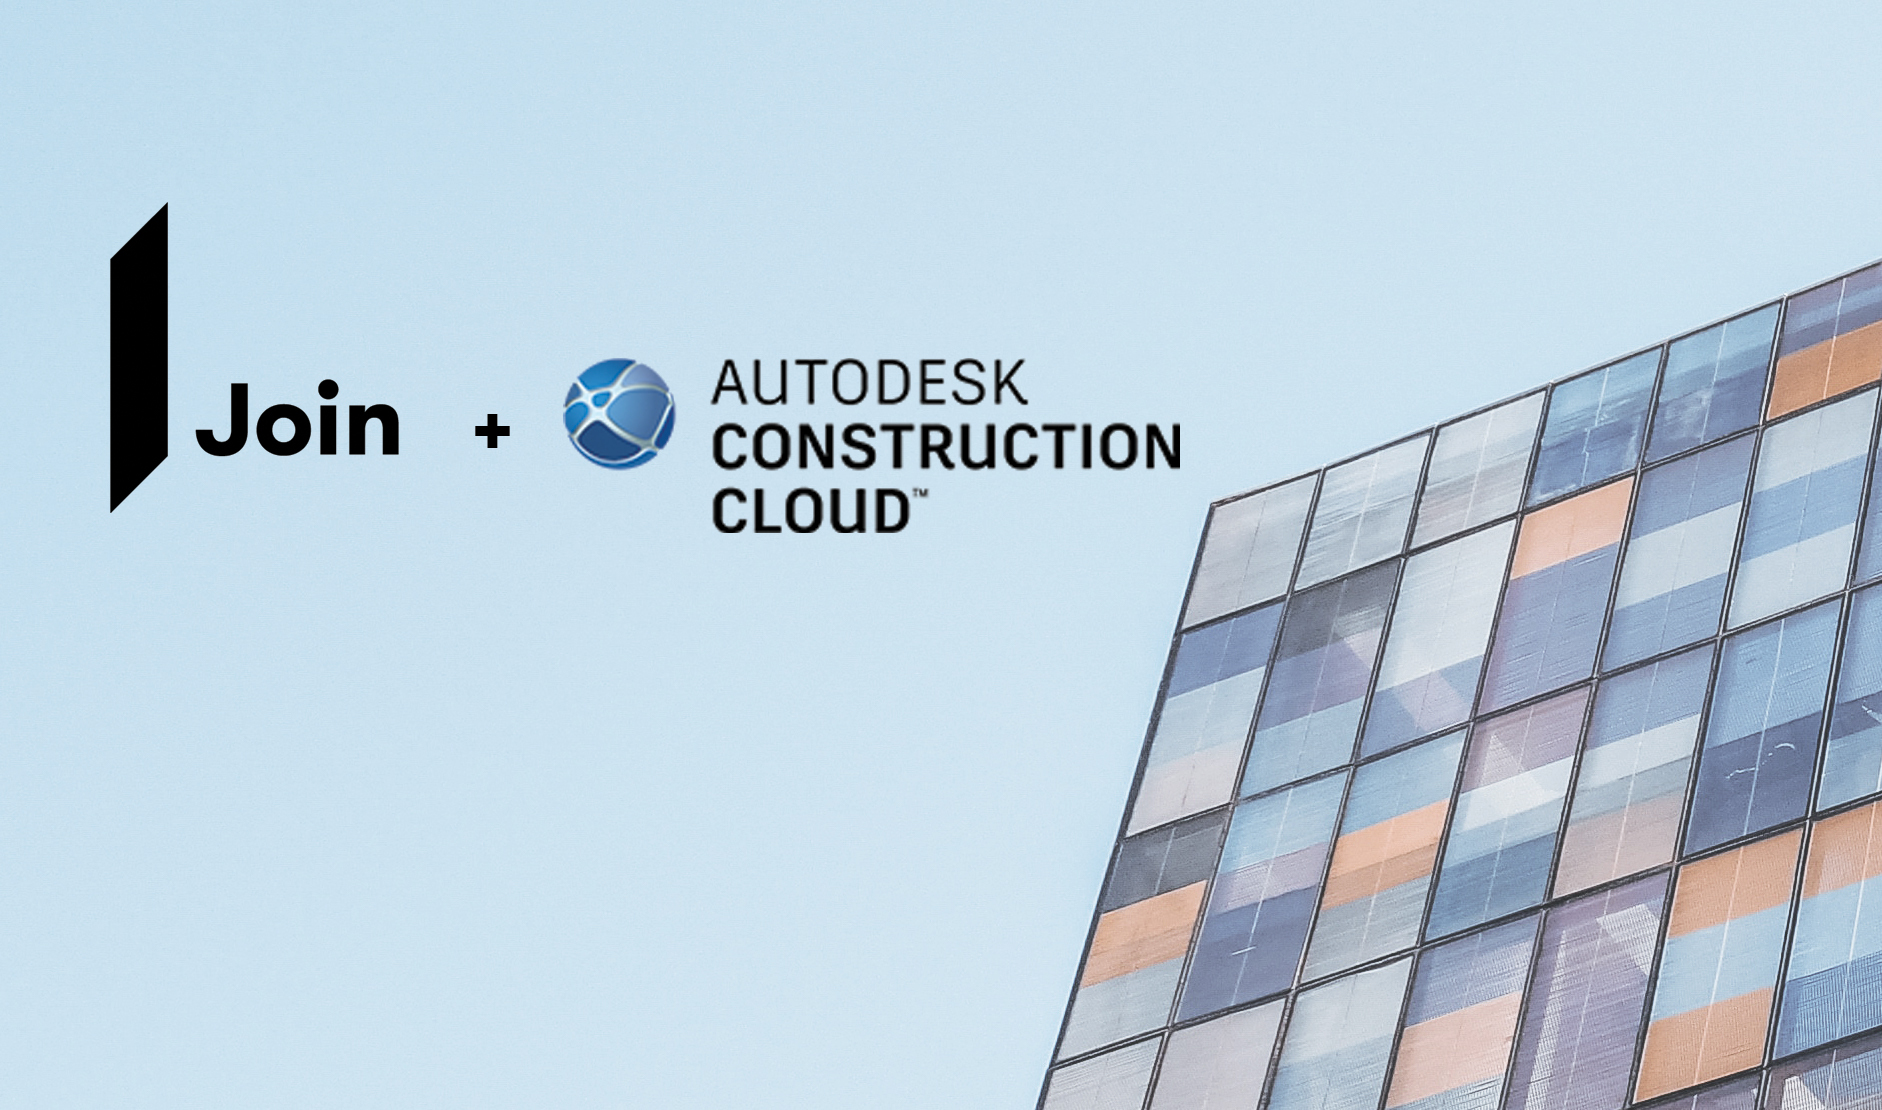 Joining the Autodesk Construction Cloud